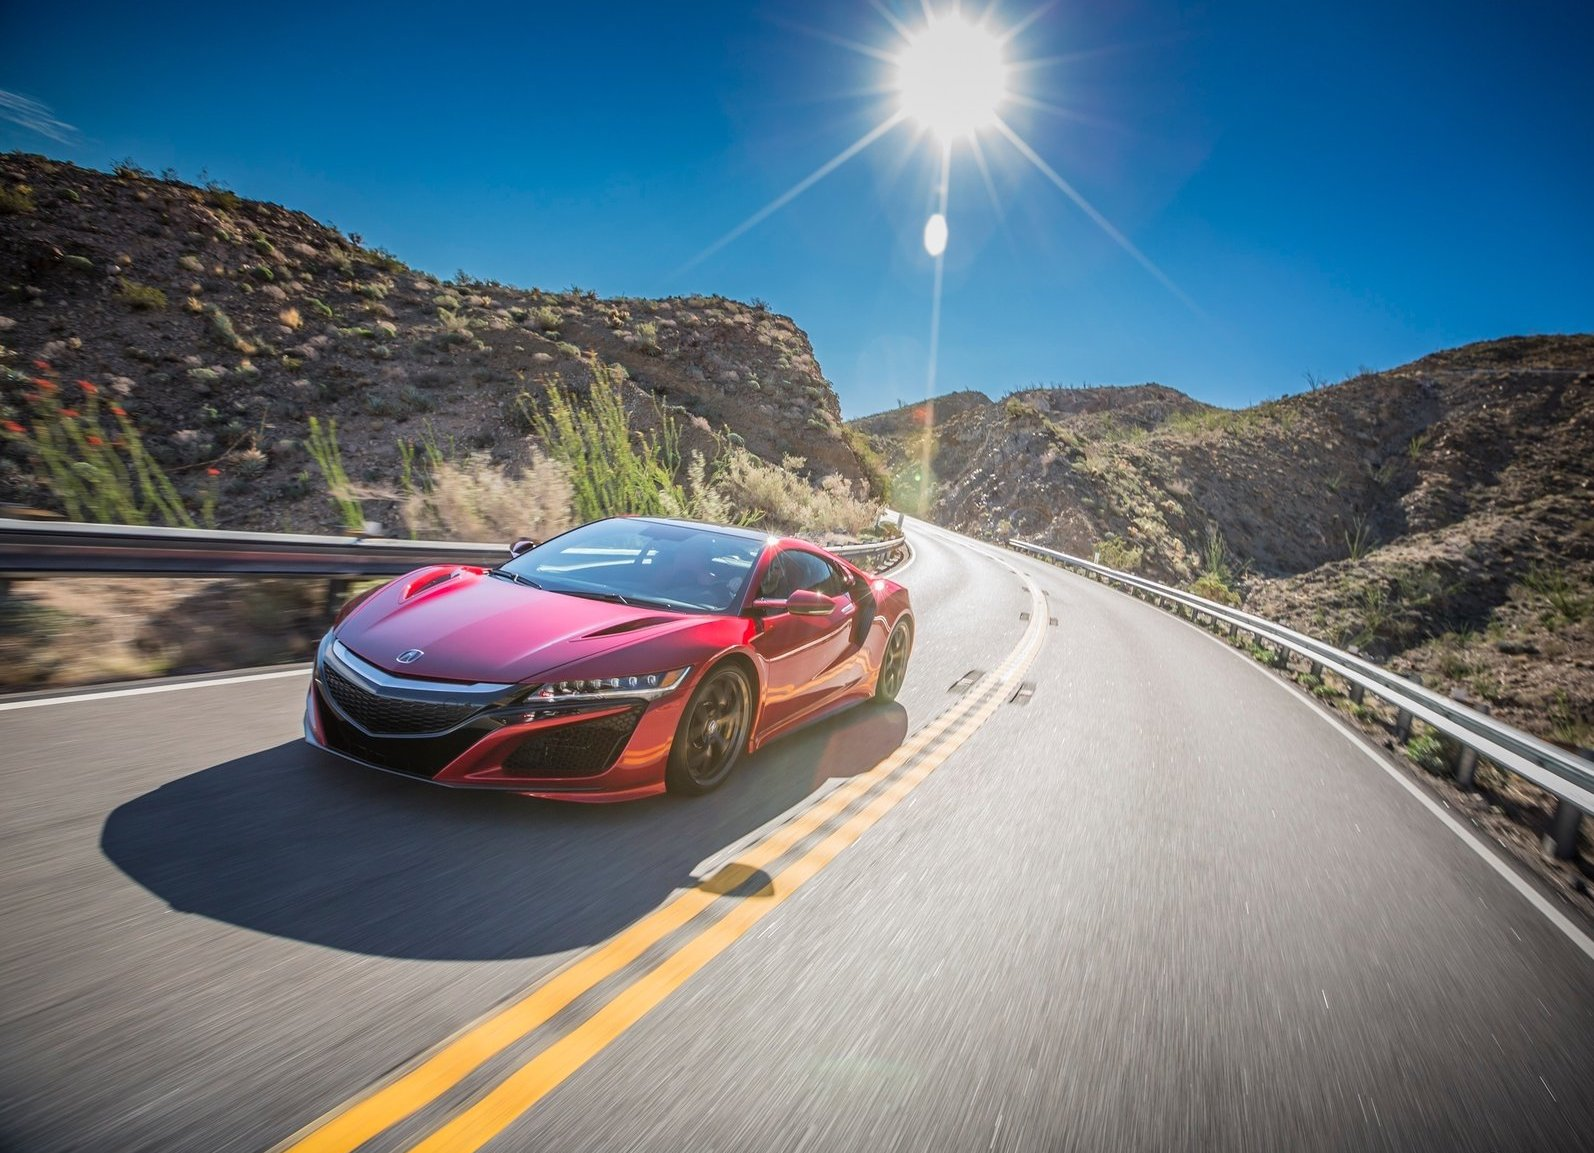 2017 Acura NSX on road red